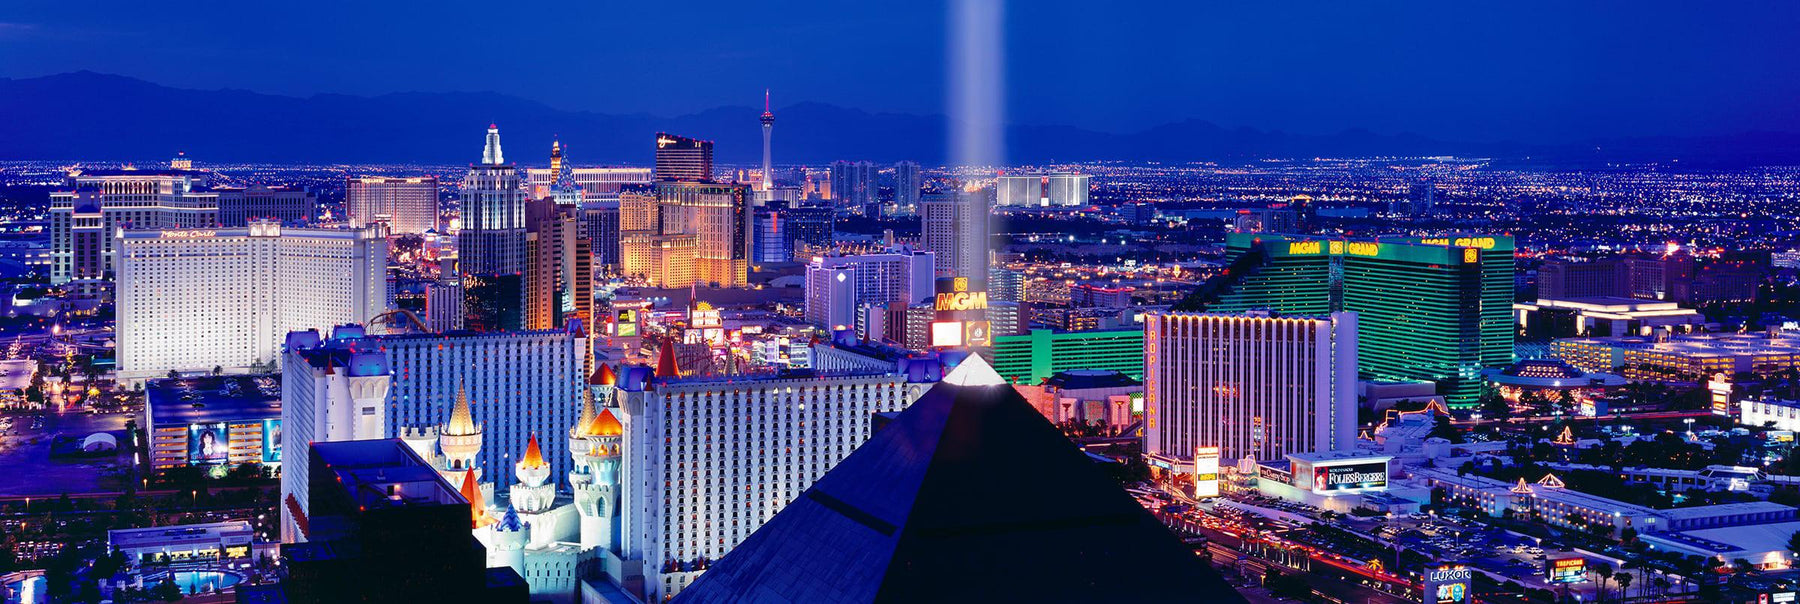 Rooftop view of the Las Vegas Strip and the Luxor pyramid shining into the sky at night